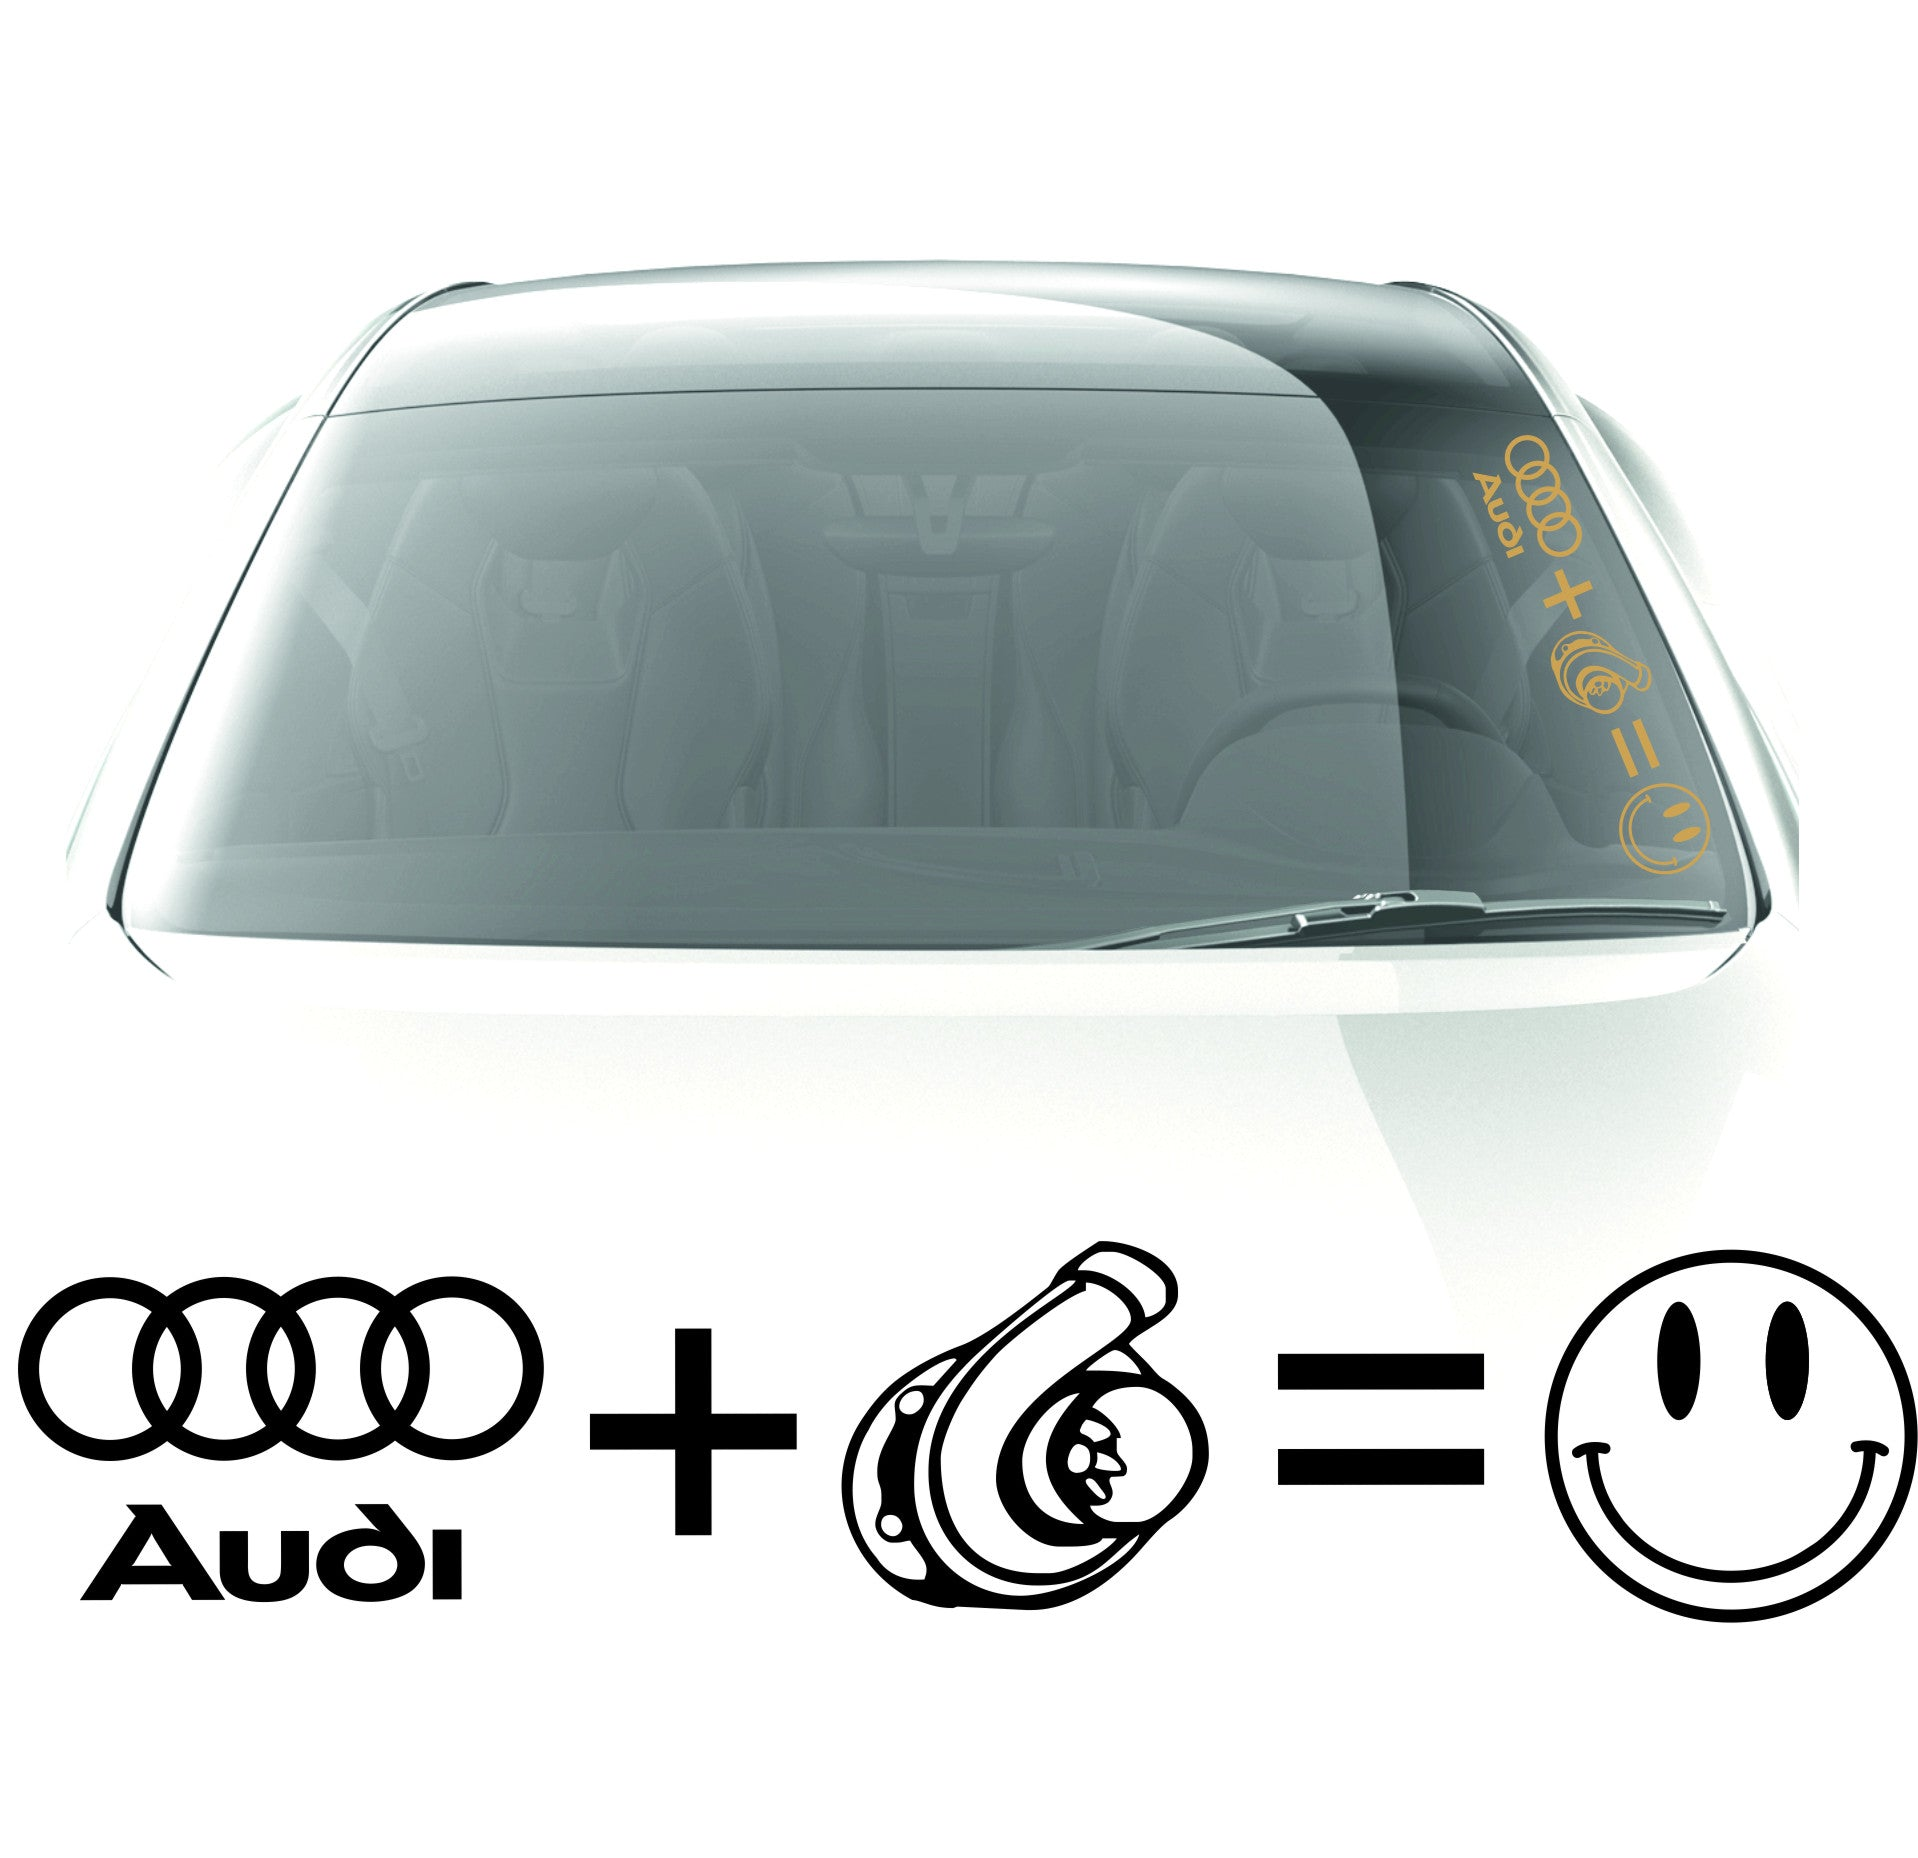 Audi + Turbo sticker - stickyarteu